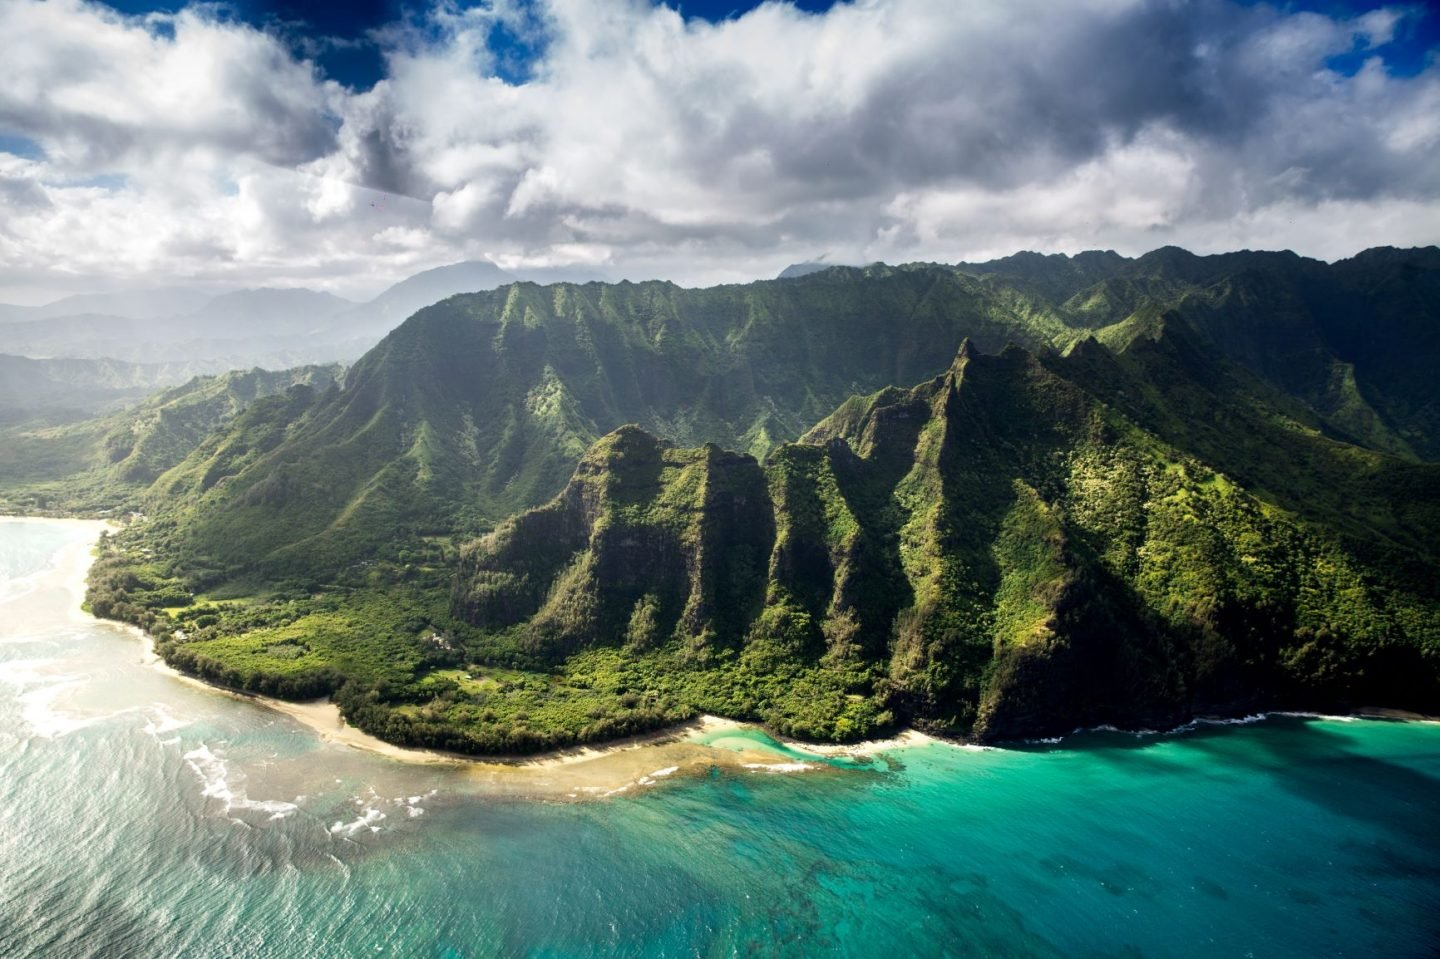 10 geography quiz questions about USA - Hawaii